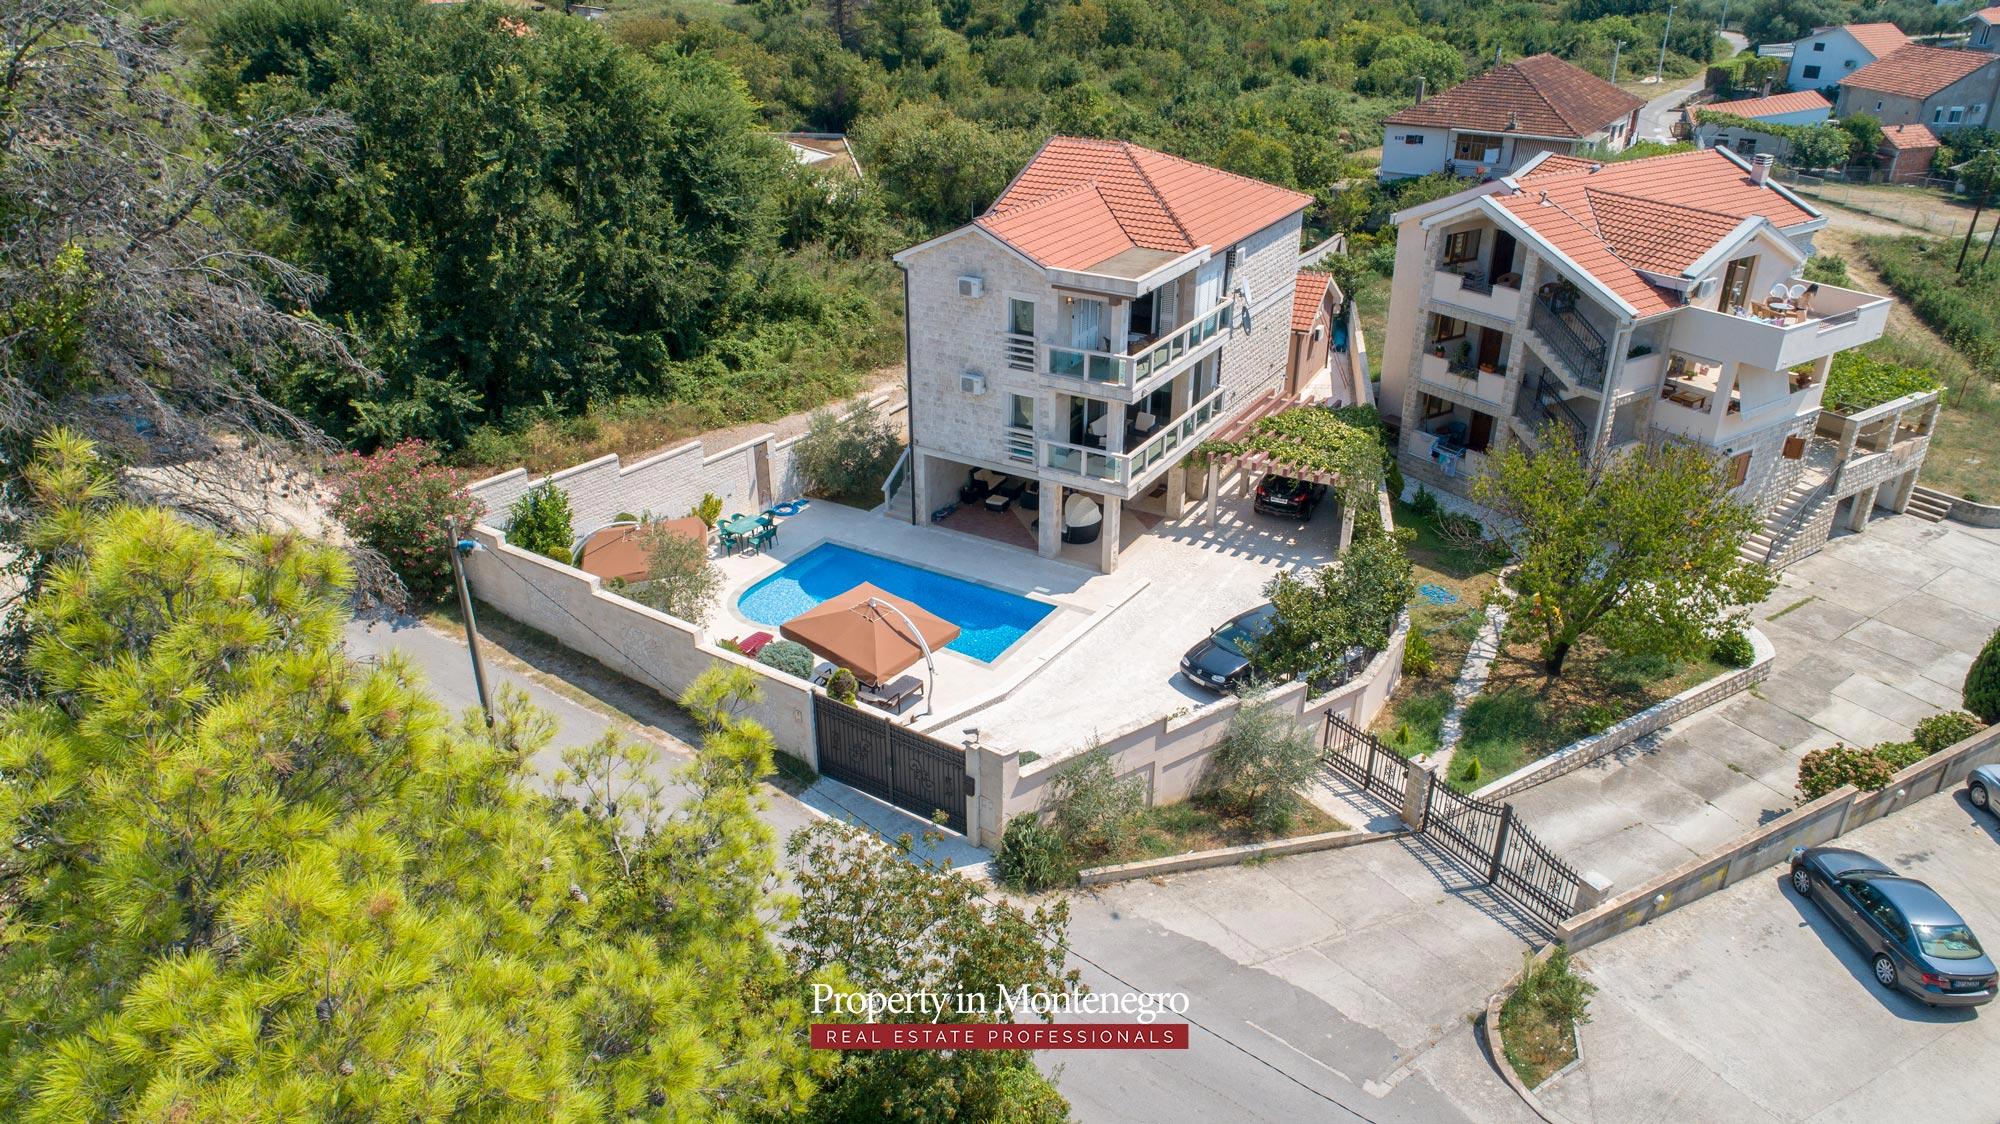 Villa-with-swimming-pool-for-sale-in-Tivat (11).jpg